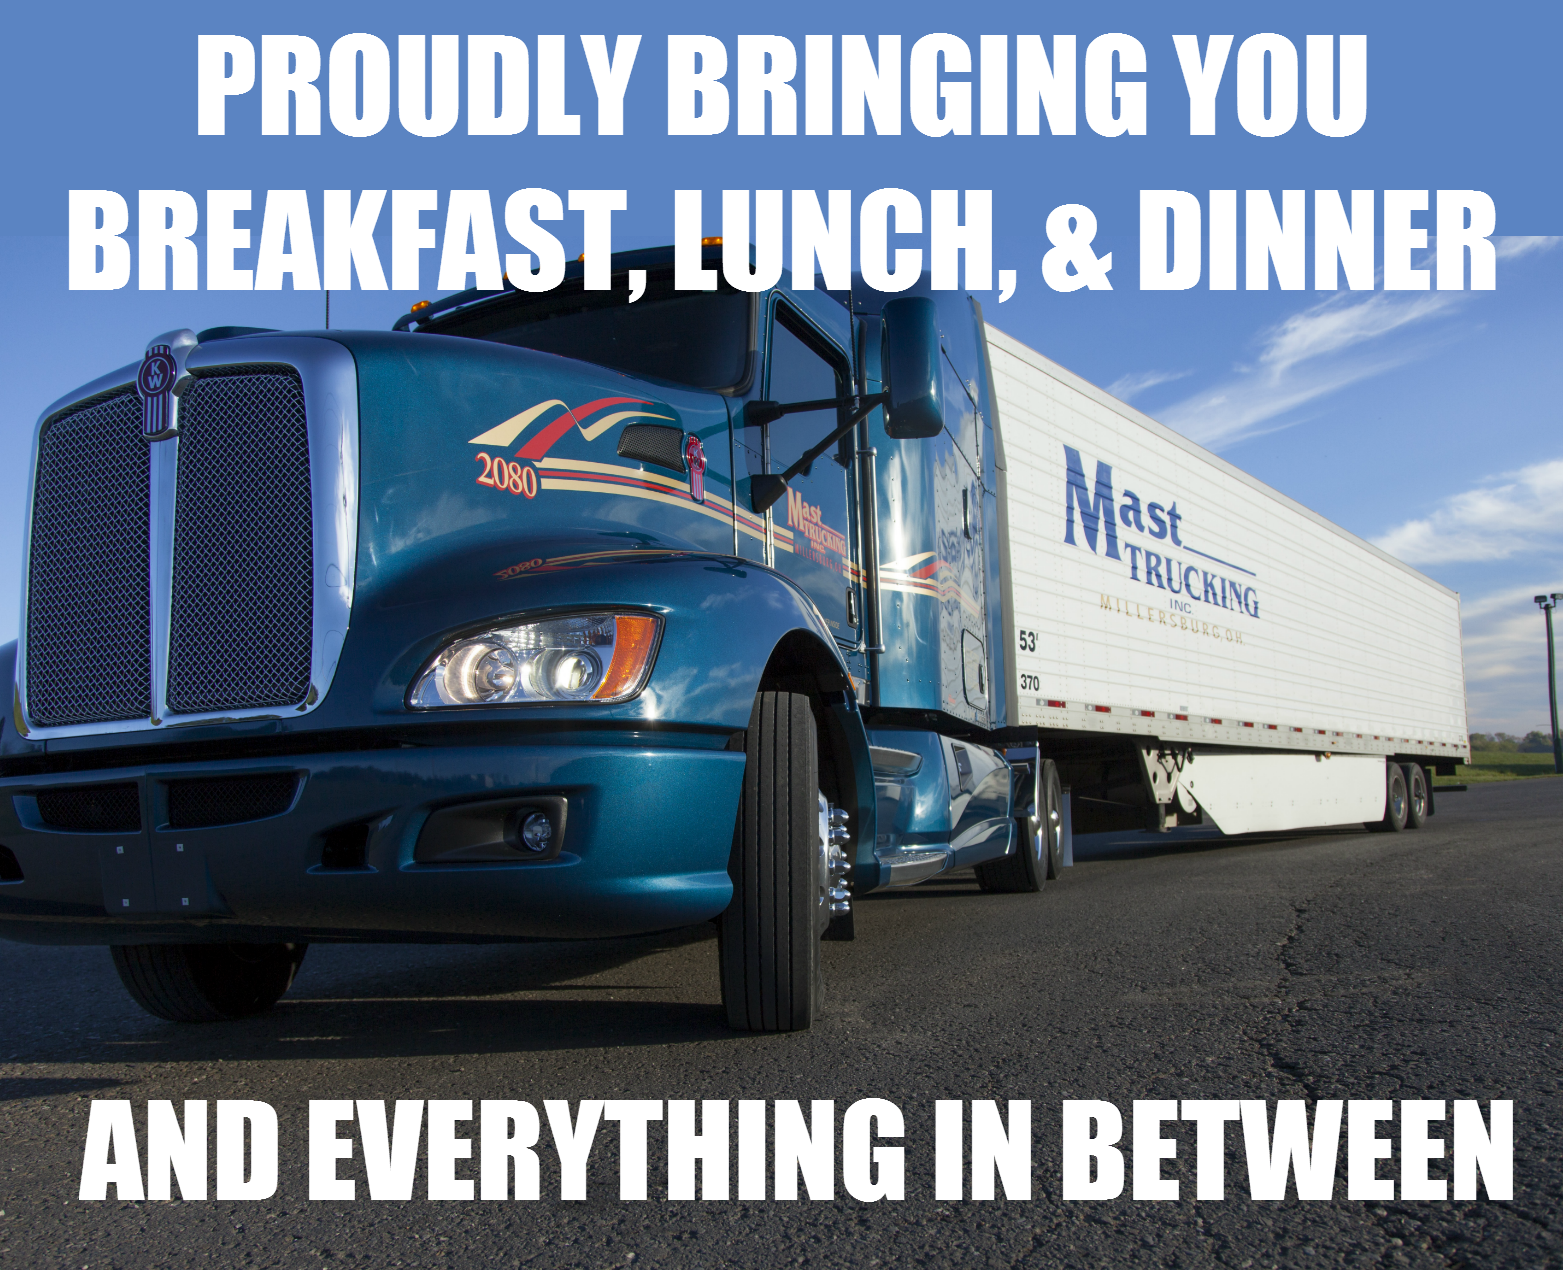 Proudly bringing you breakfast, lunch & dinner and